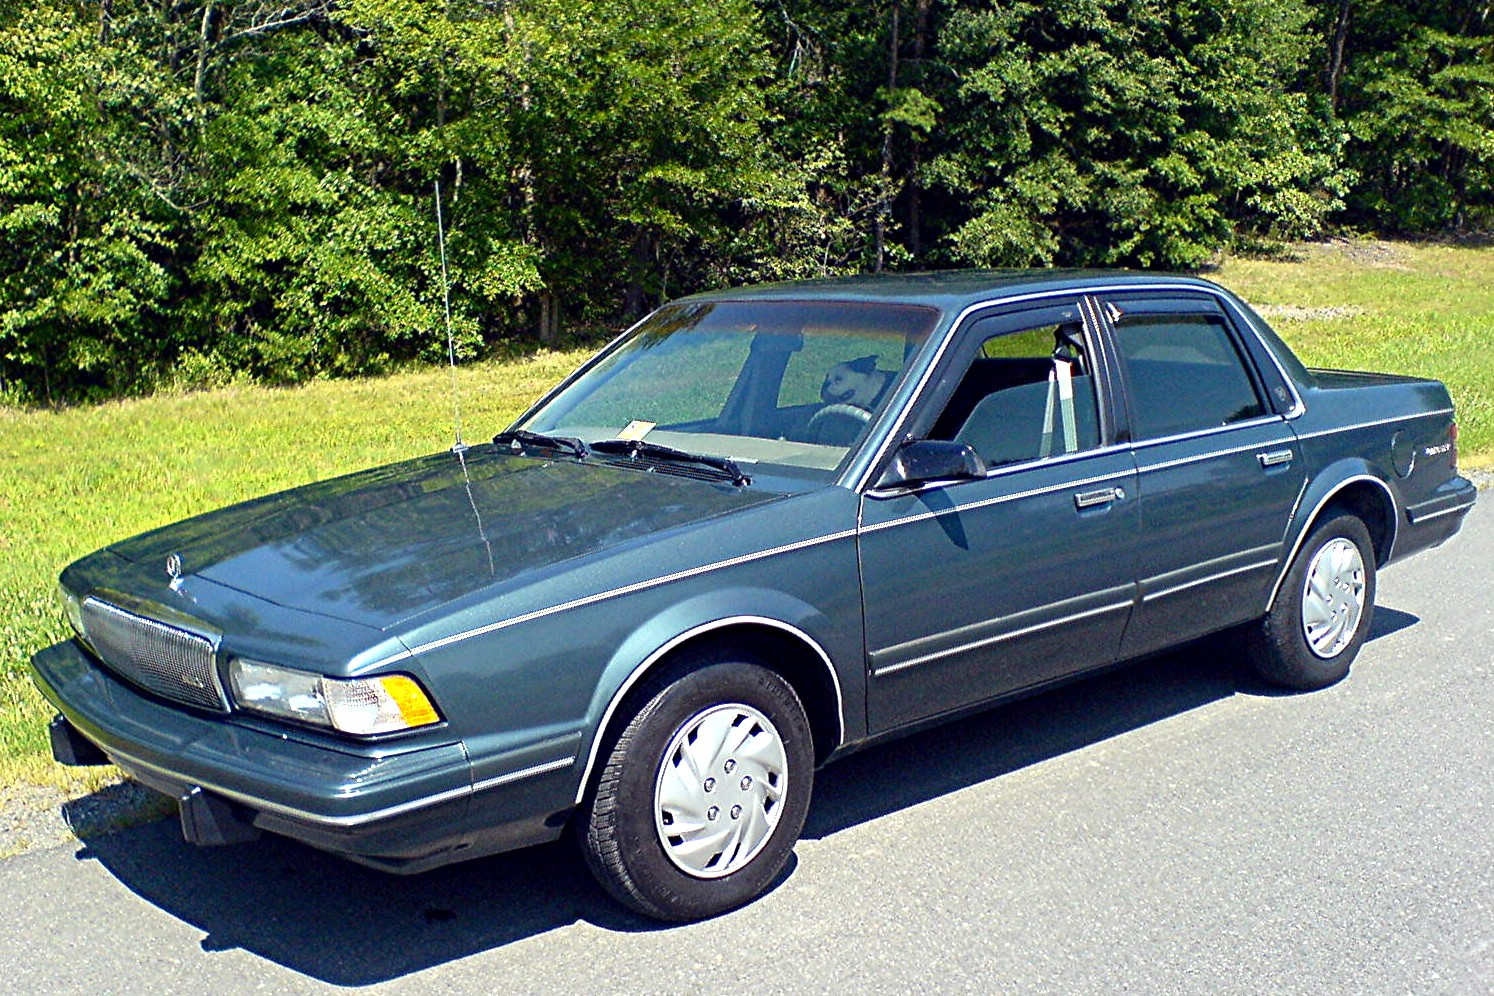 1995 Buick Century Information And Photos Zombiedrive